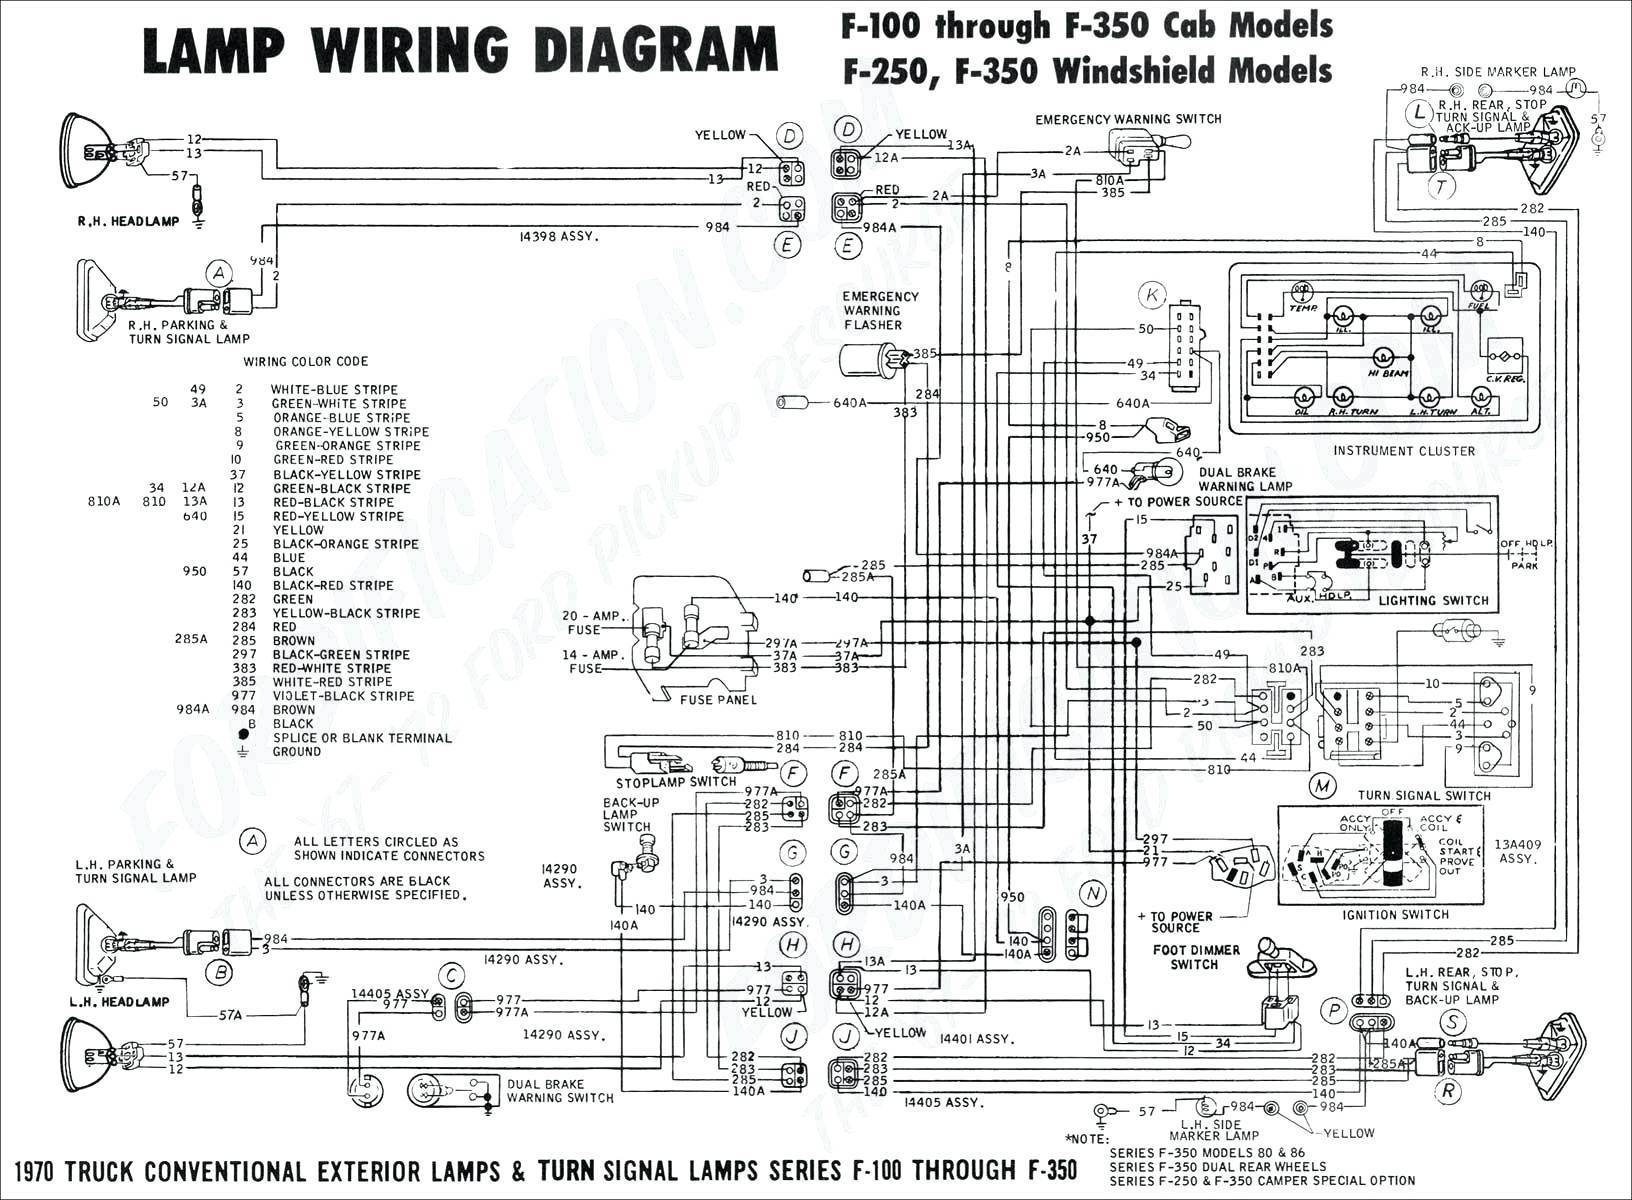 Wiring Diagram for 7 Wire Trailer Plug Fresh Diagram Wiring Pic Pin Round Trailer Plug Wiring Diagram Australia